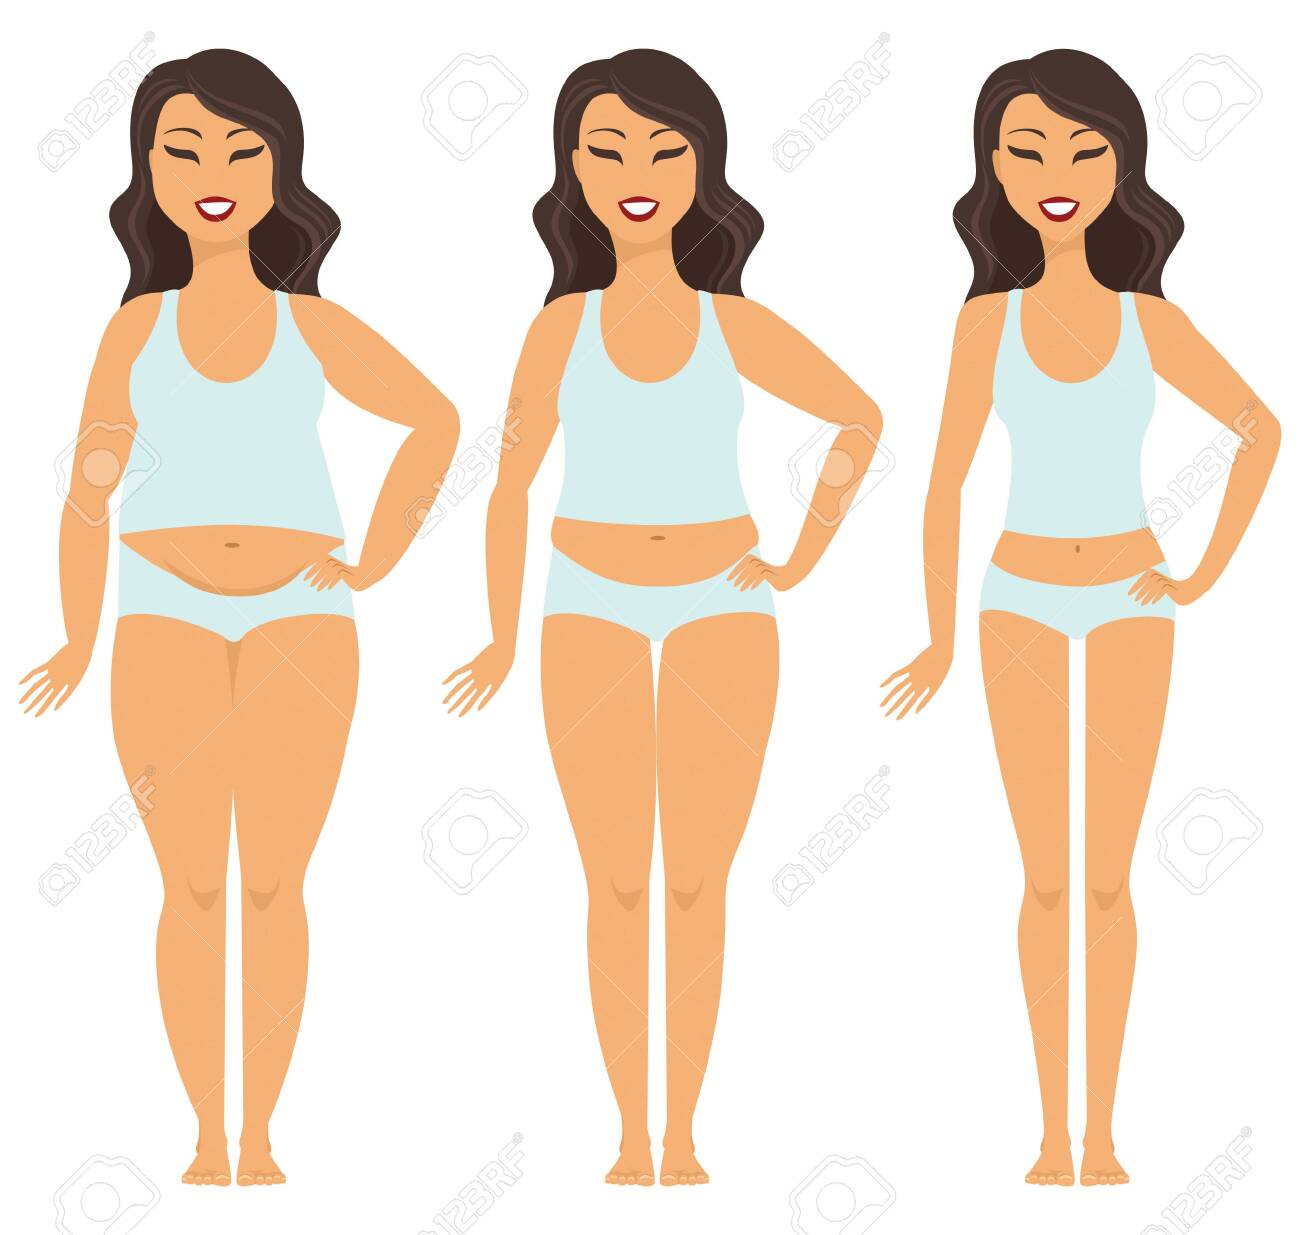 Female weight loss transformation from fat to slim - 123875891